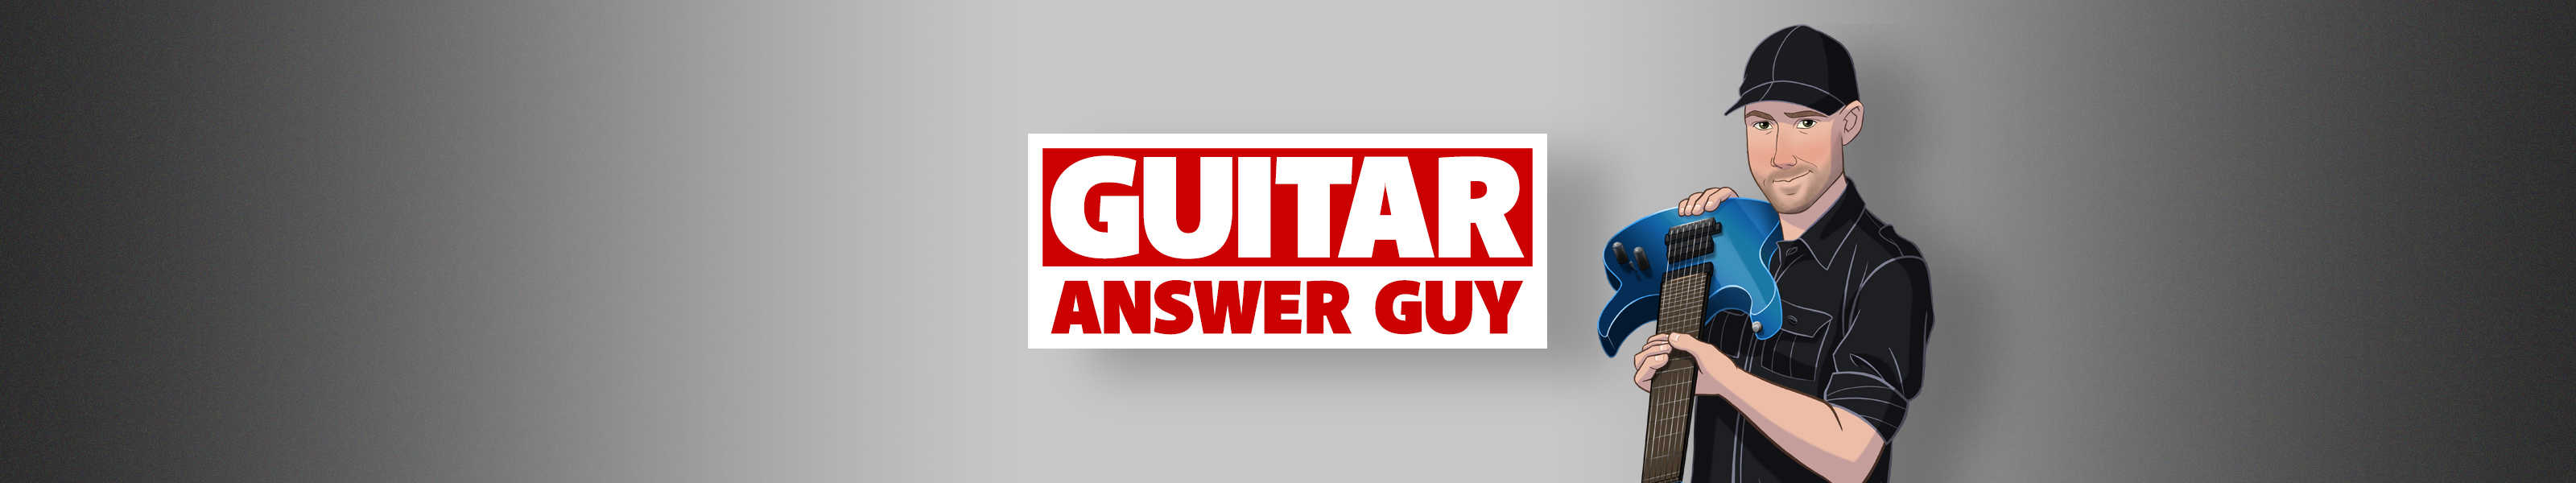 The Guitar Answer Guy